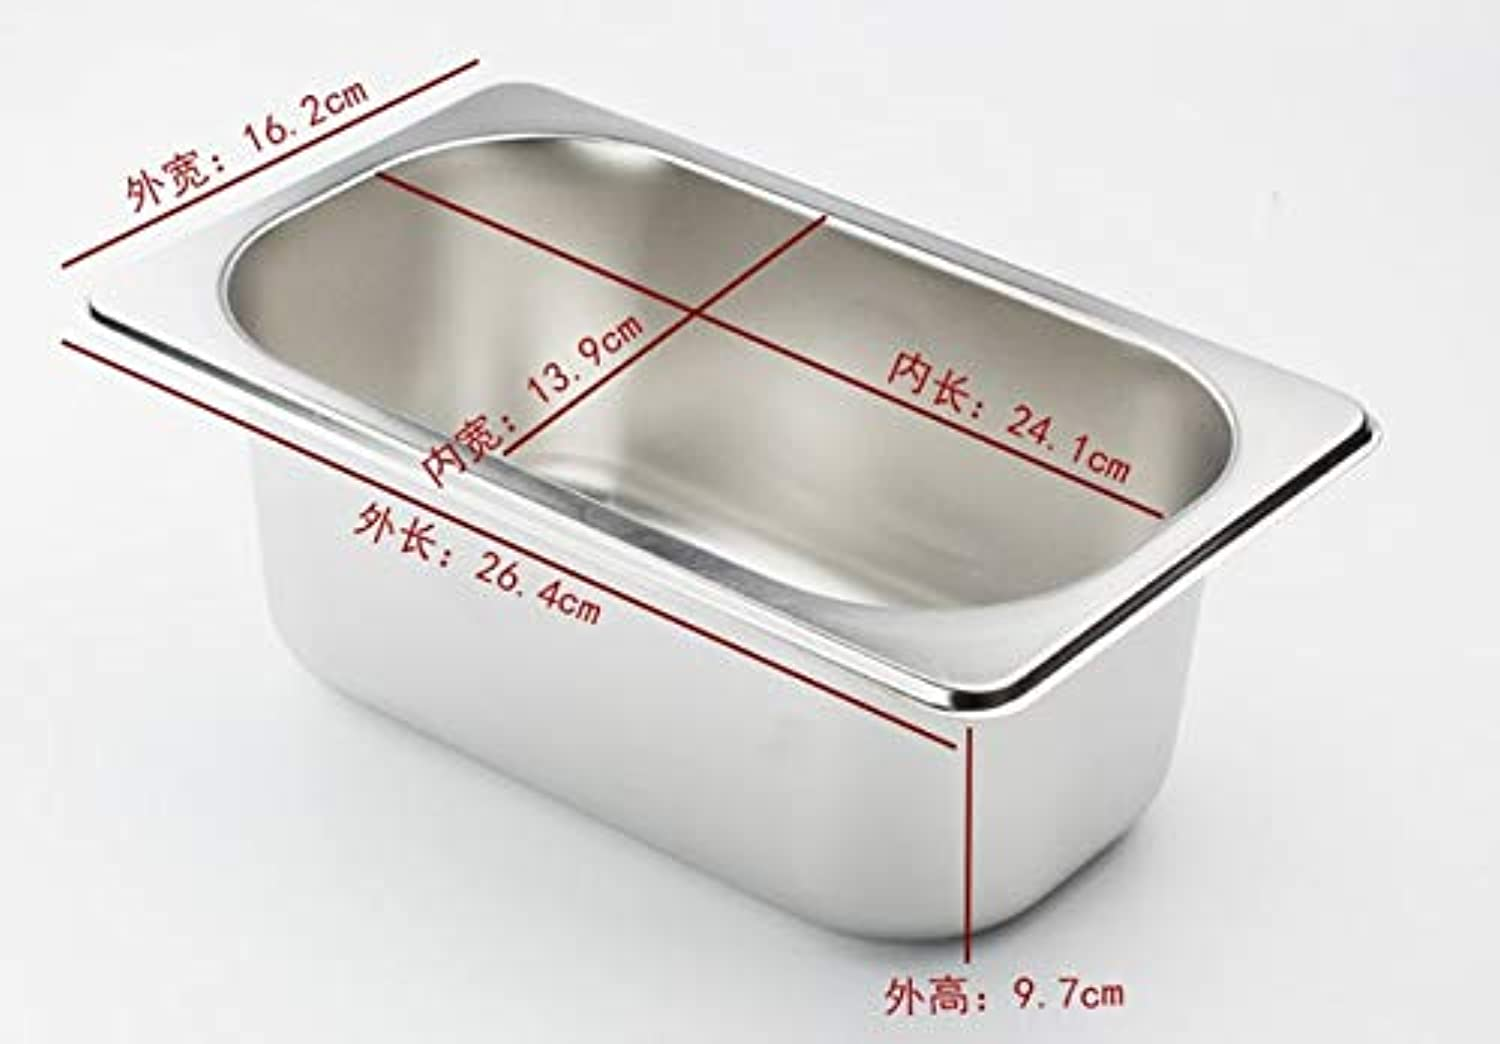 Square pots GN Pan Kitchen 304 Stainless Steel 1 9 1 6 1 4 1 3 Food pan Chafing Buffet Gastronorm Pan Containers Lid 0.6mm   1-4 26.4x16.2x9.7cm